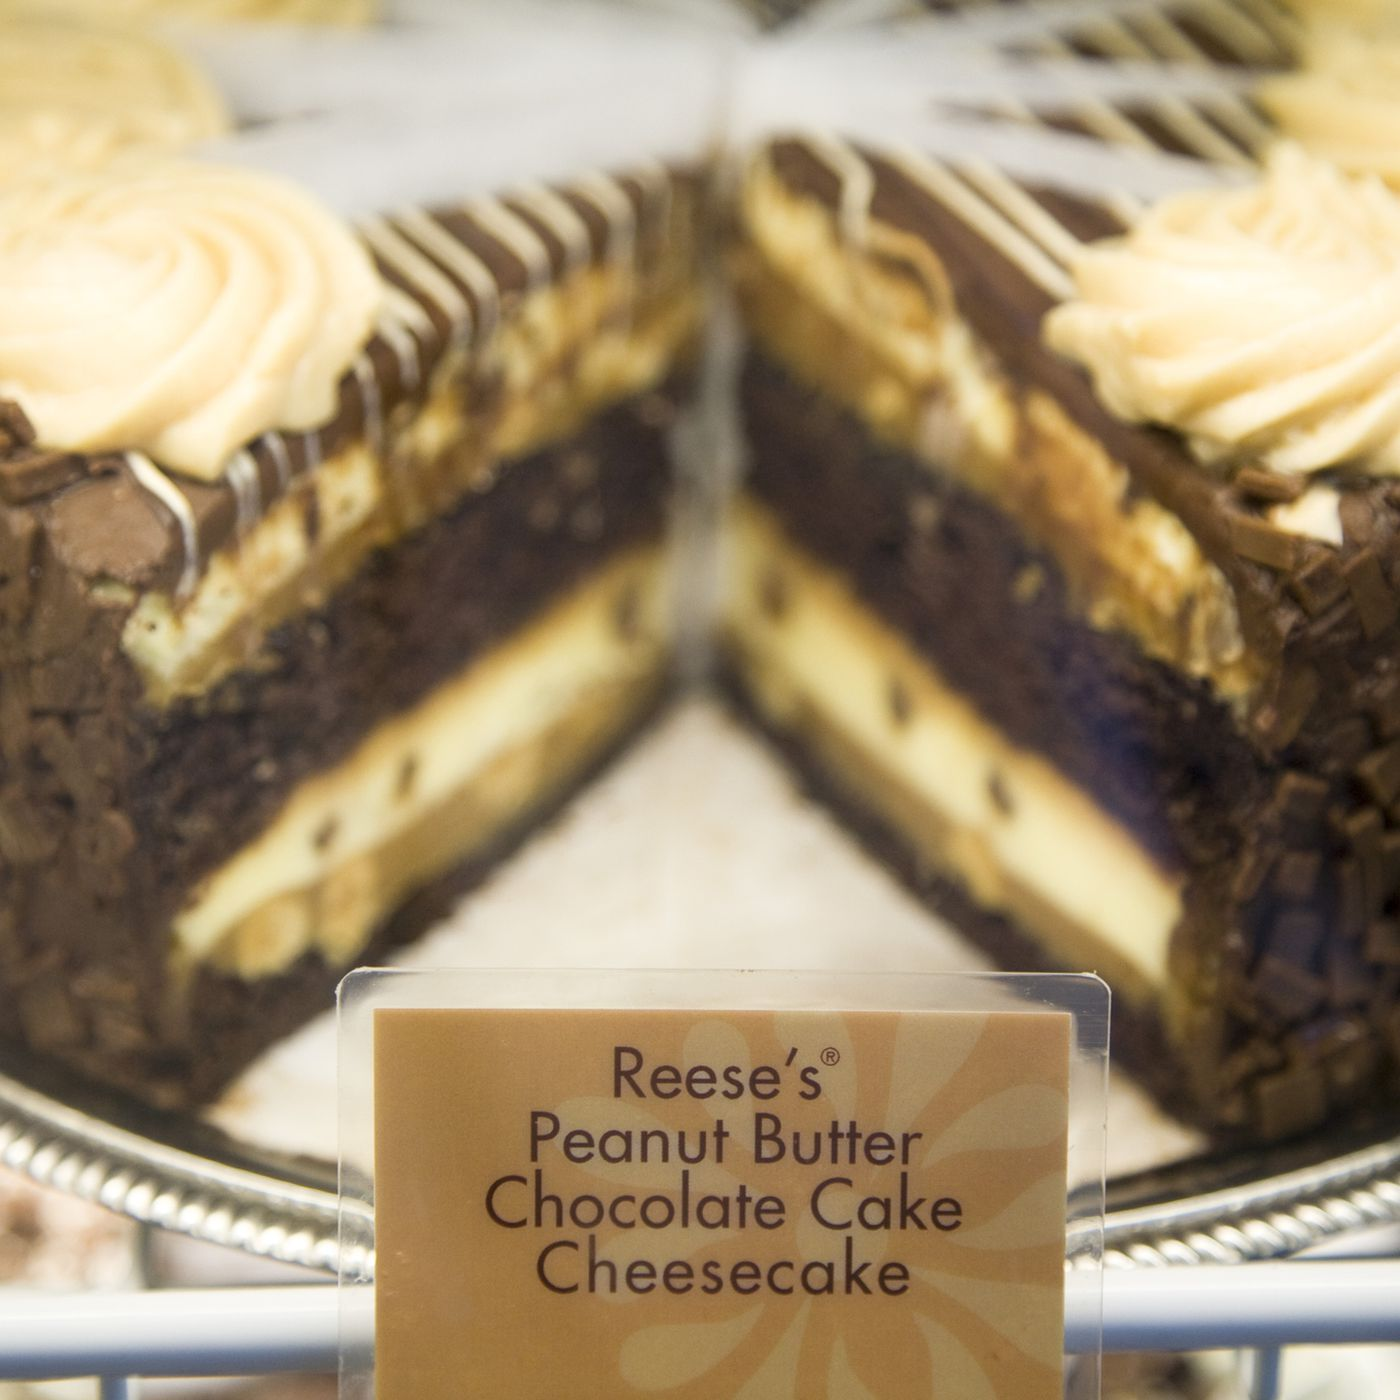 Two Cheesecake Factory Meals With More Calories Than You Should Eat In An Entire Day Vox